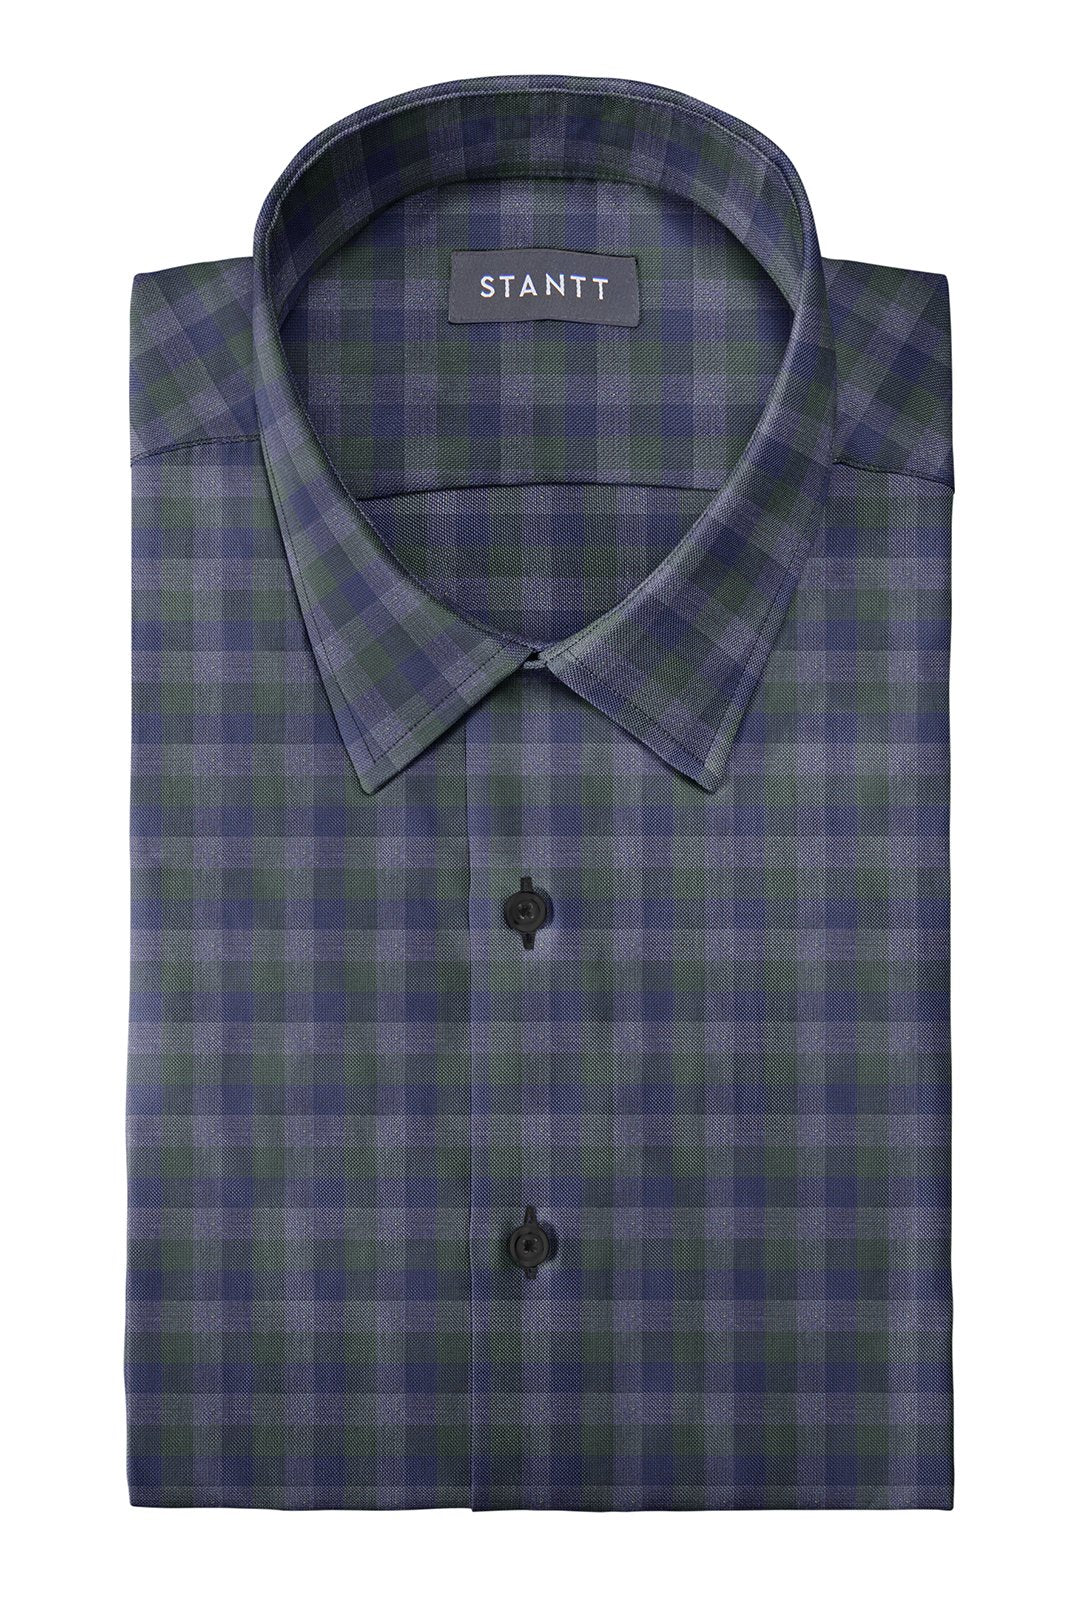 Hunter Green Charcoal Multi Check: Semi-Spread Collar, Barrel Cuff